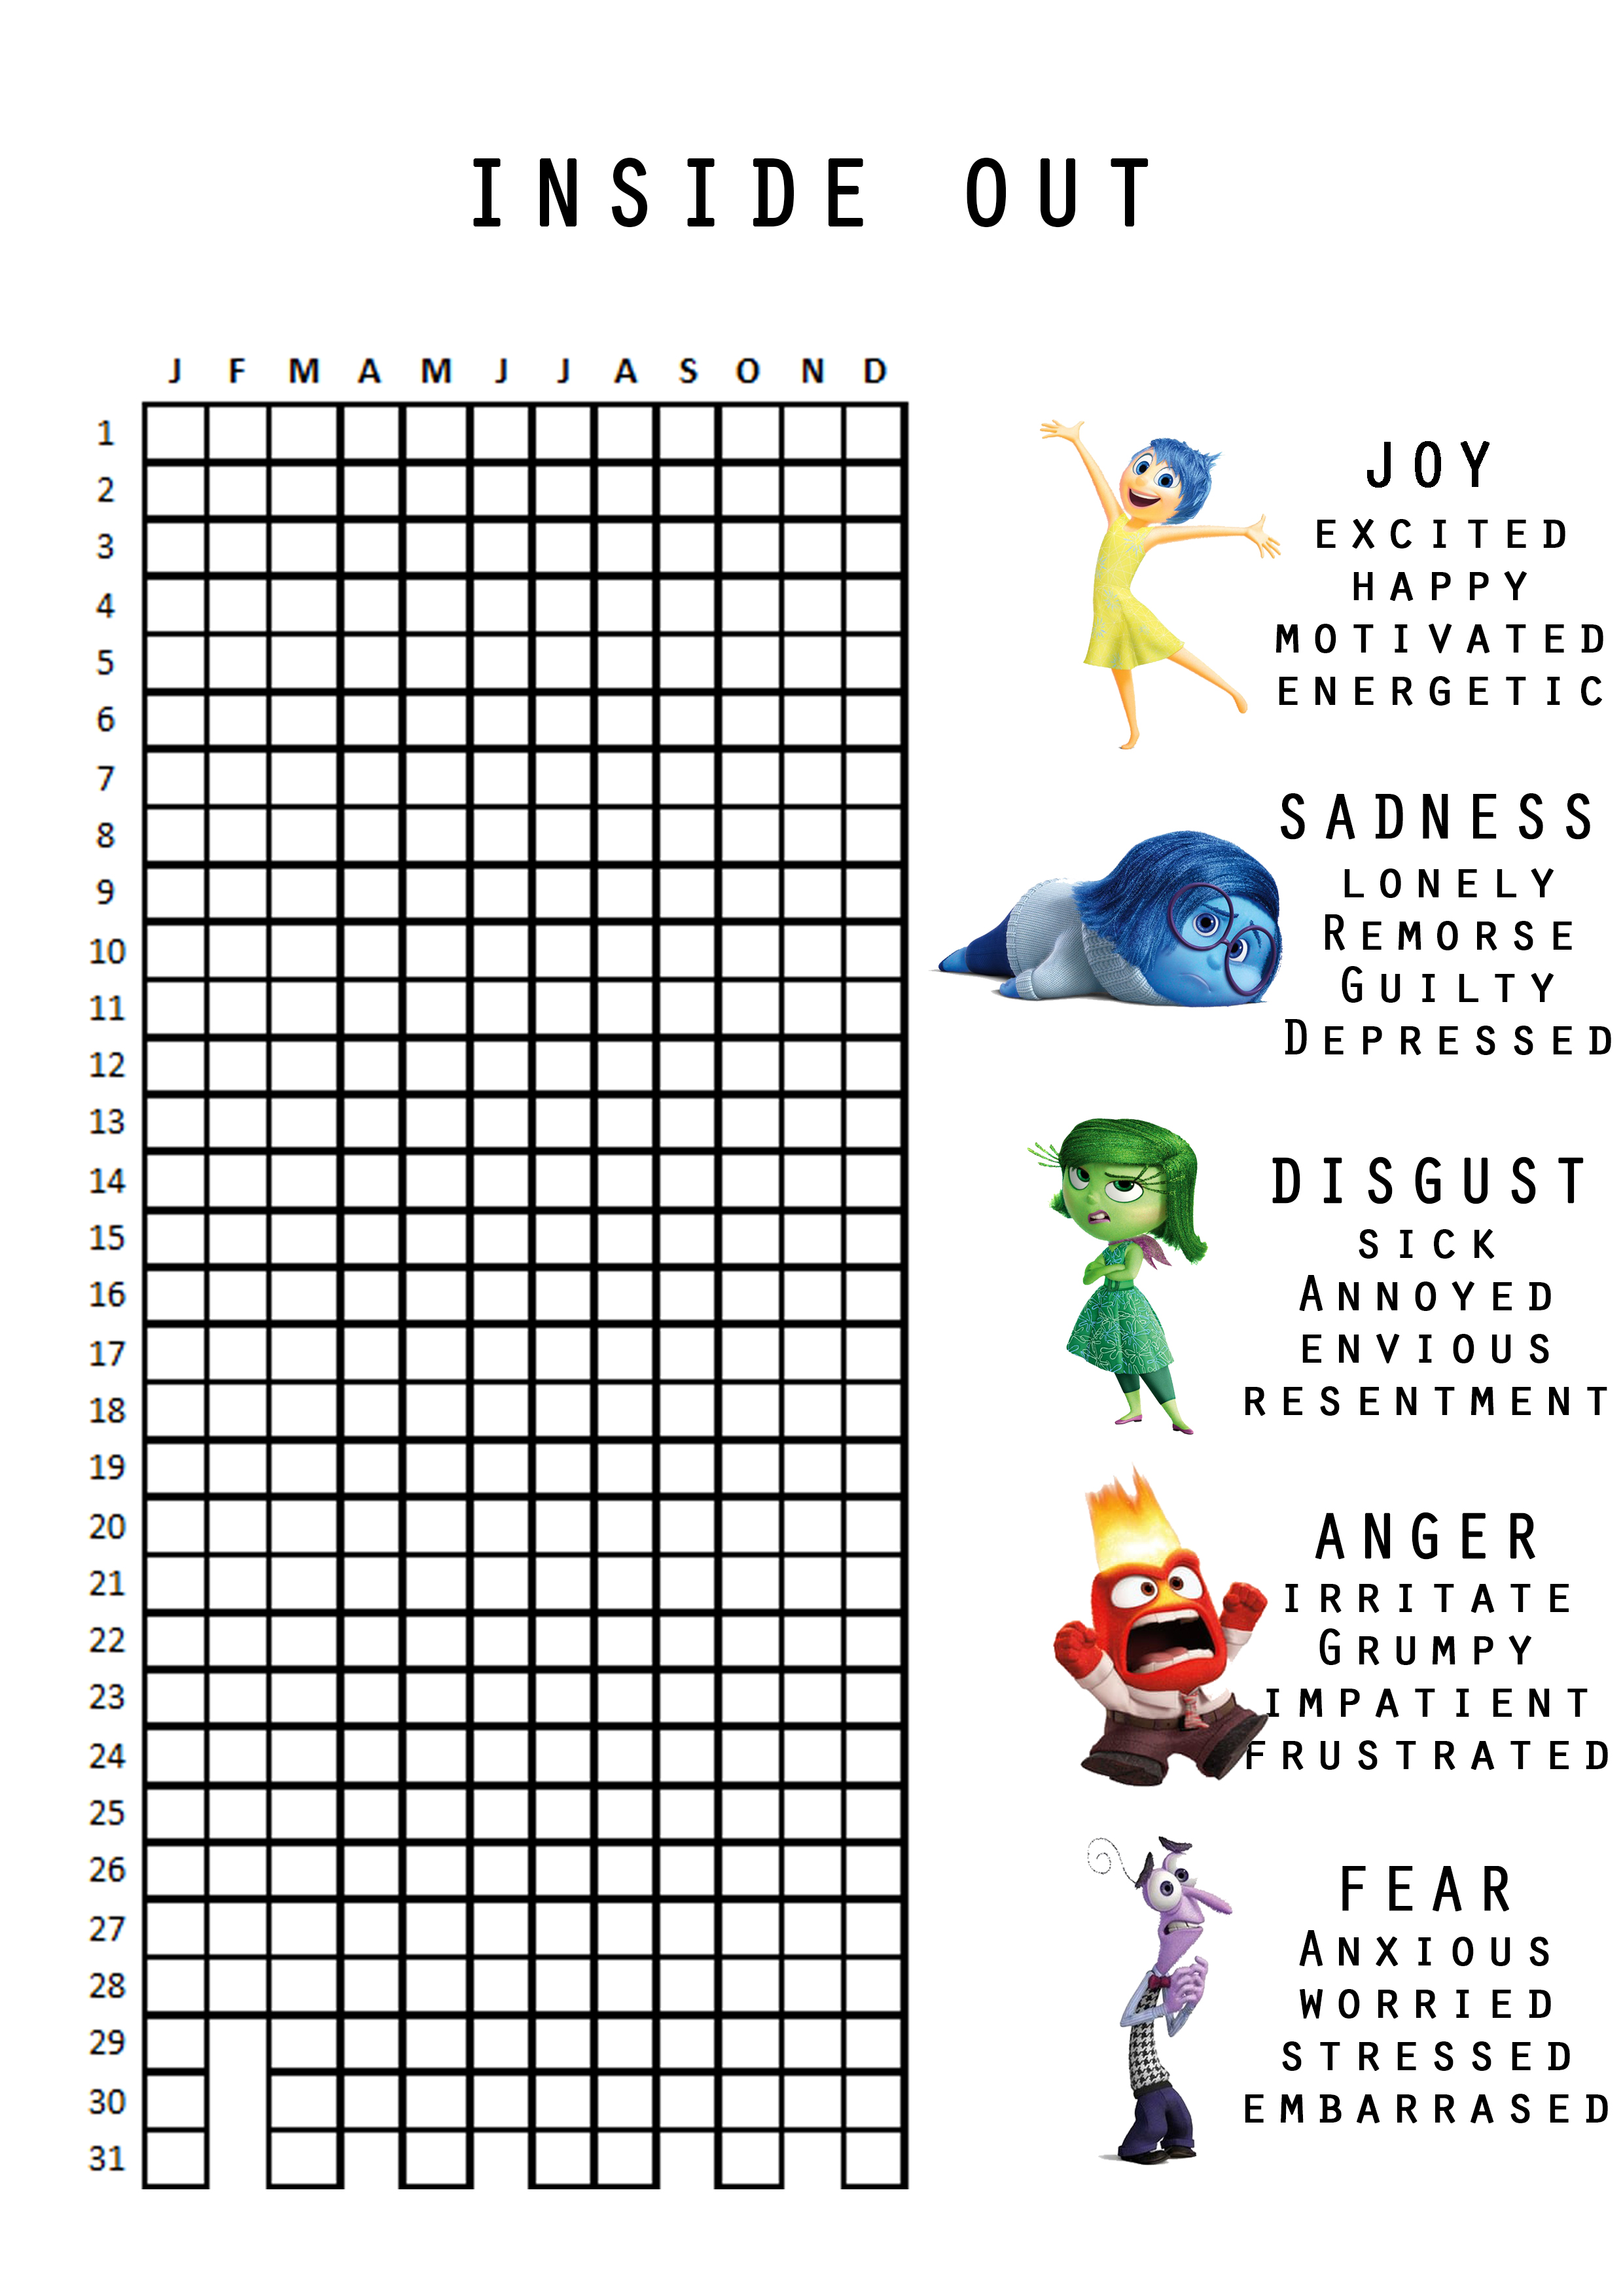 image relating to Printable Mood Tracker identified as In Out: On a yearly basis Temper Tracker